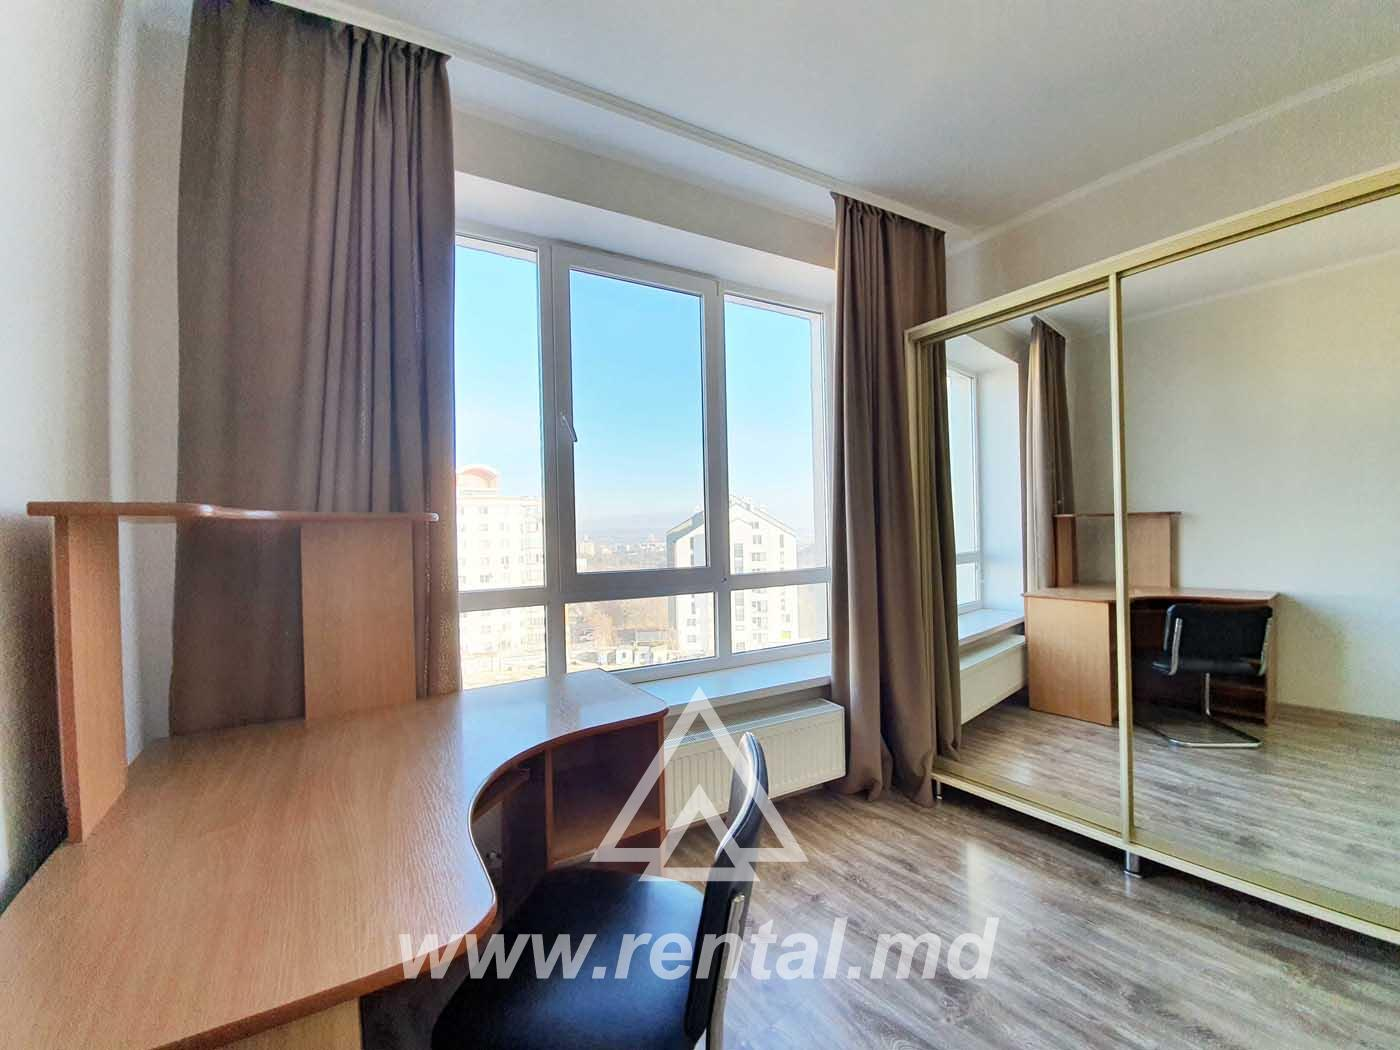 4-rooms apartment in Chisinau in a new building